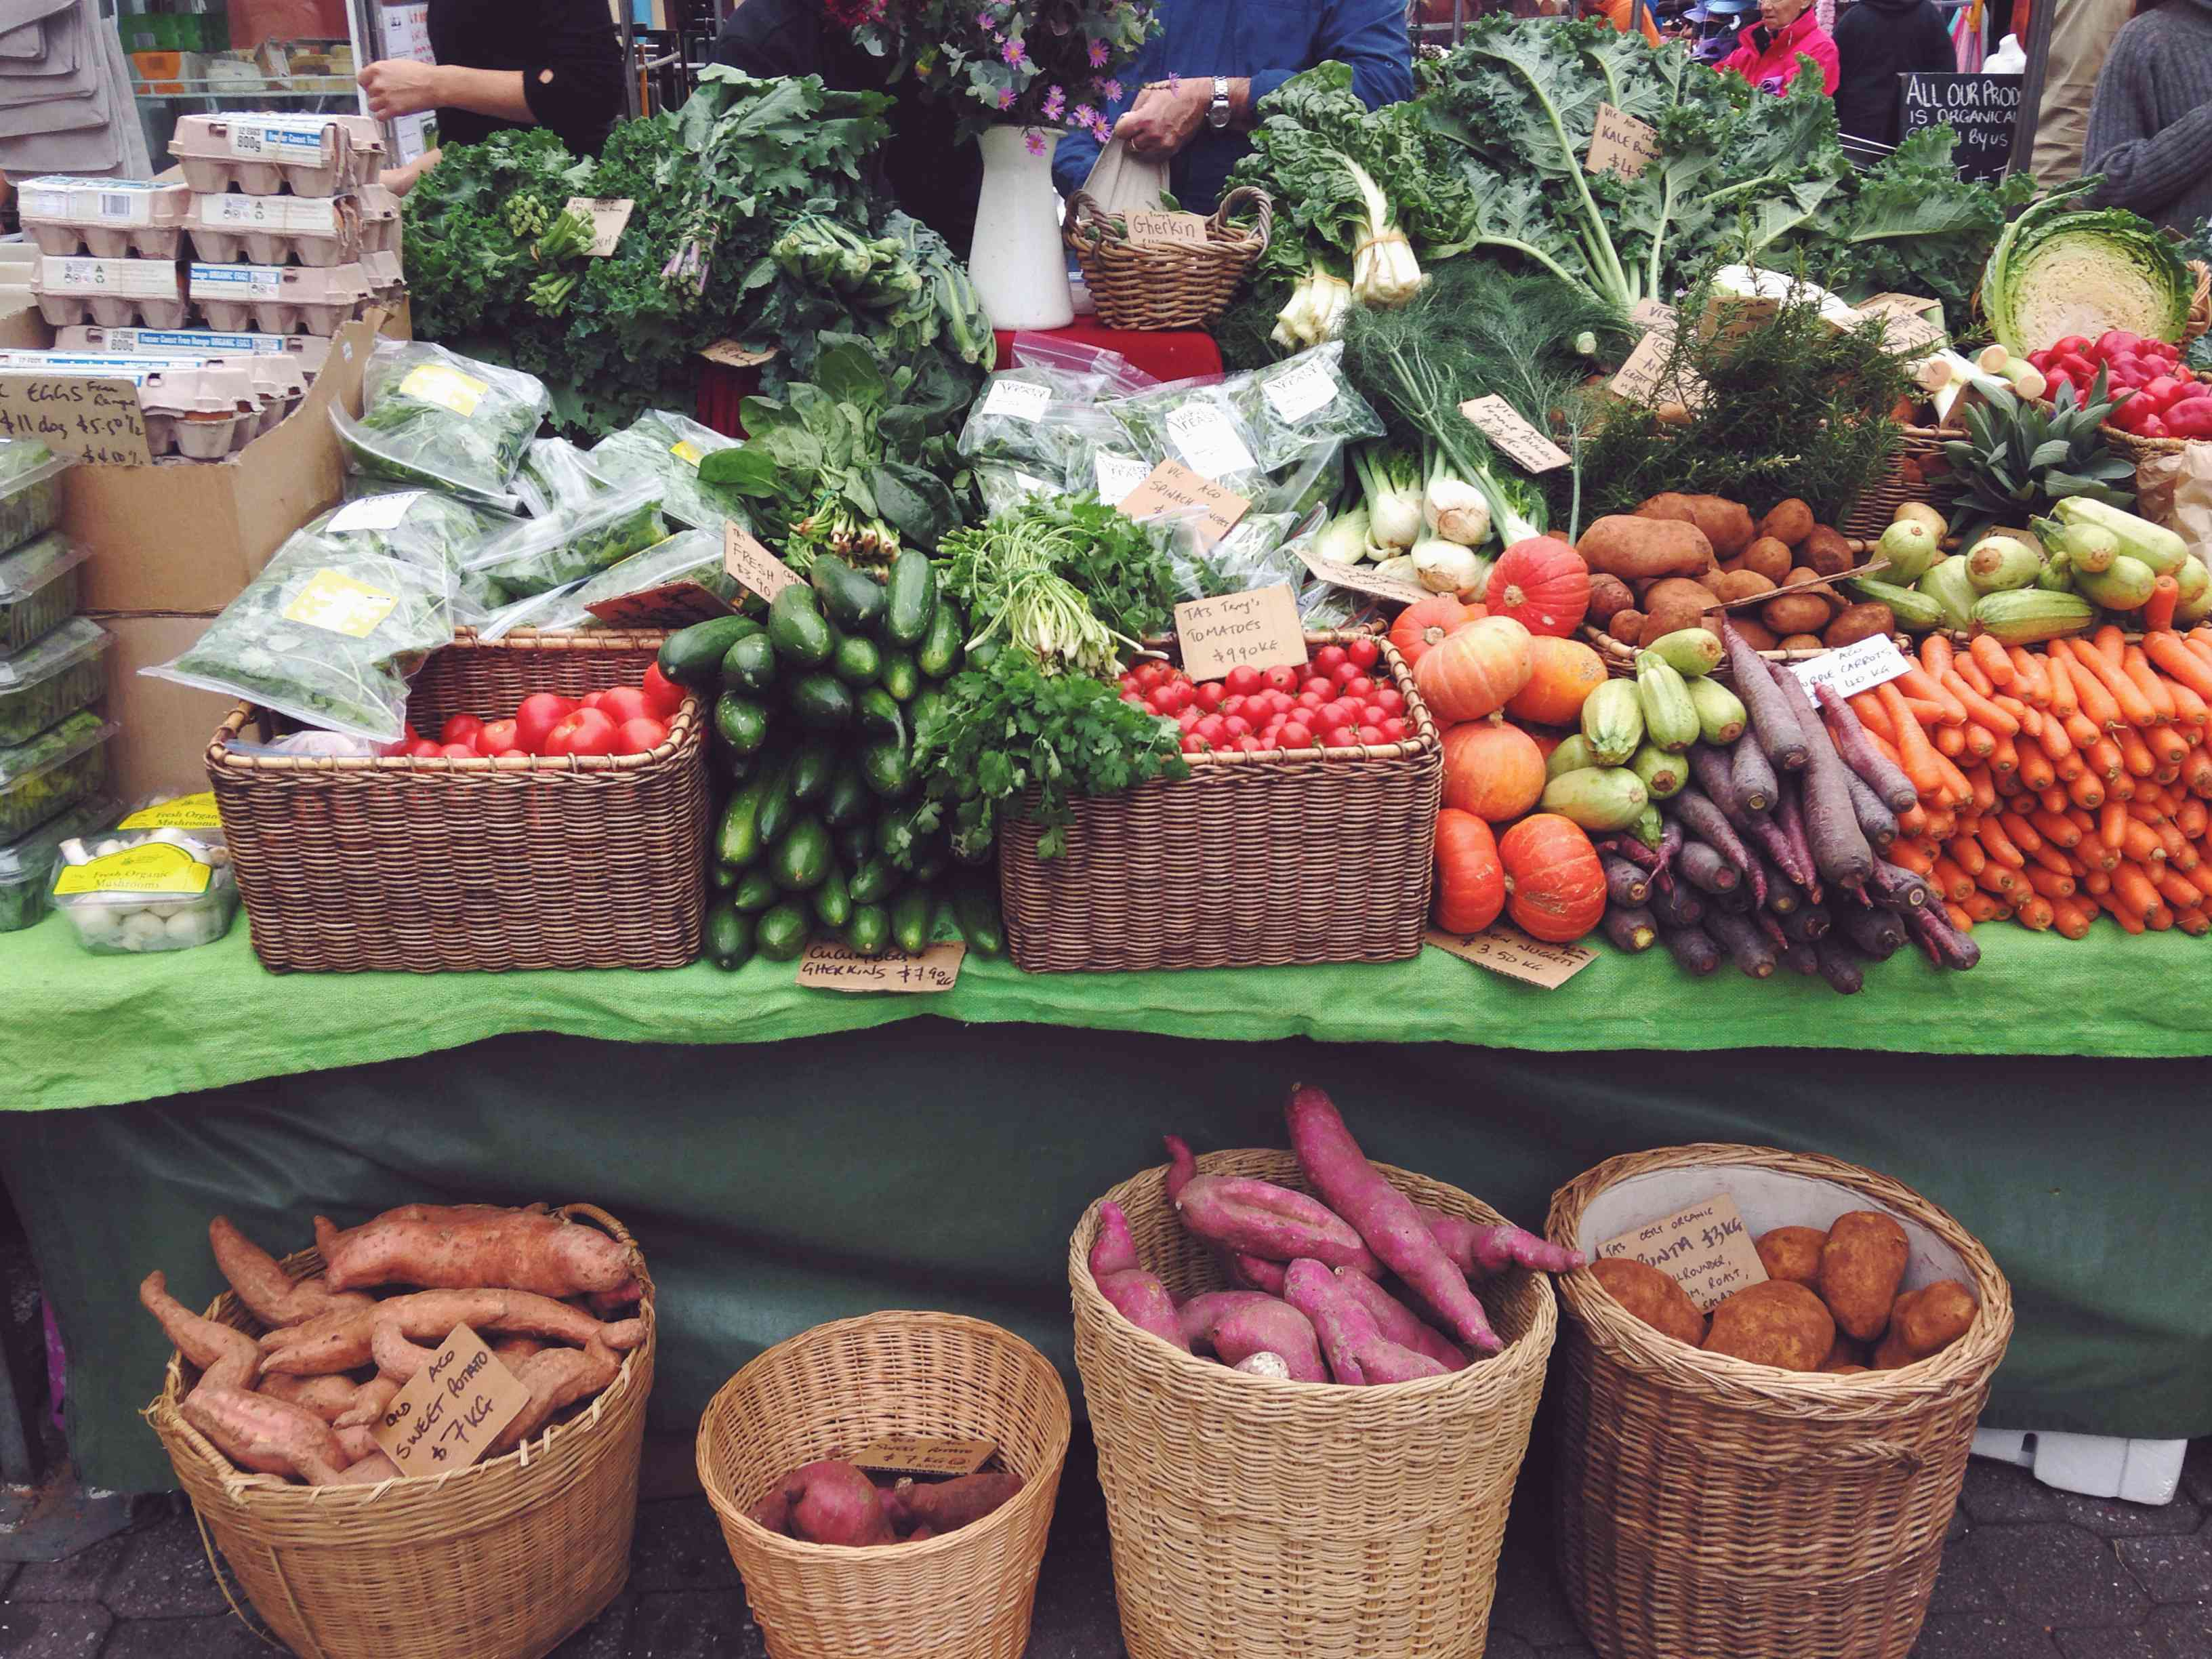 Colorful fresh produce at local market